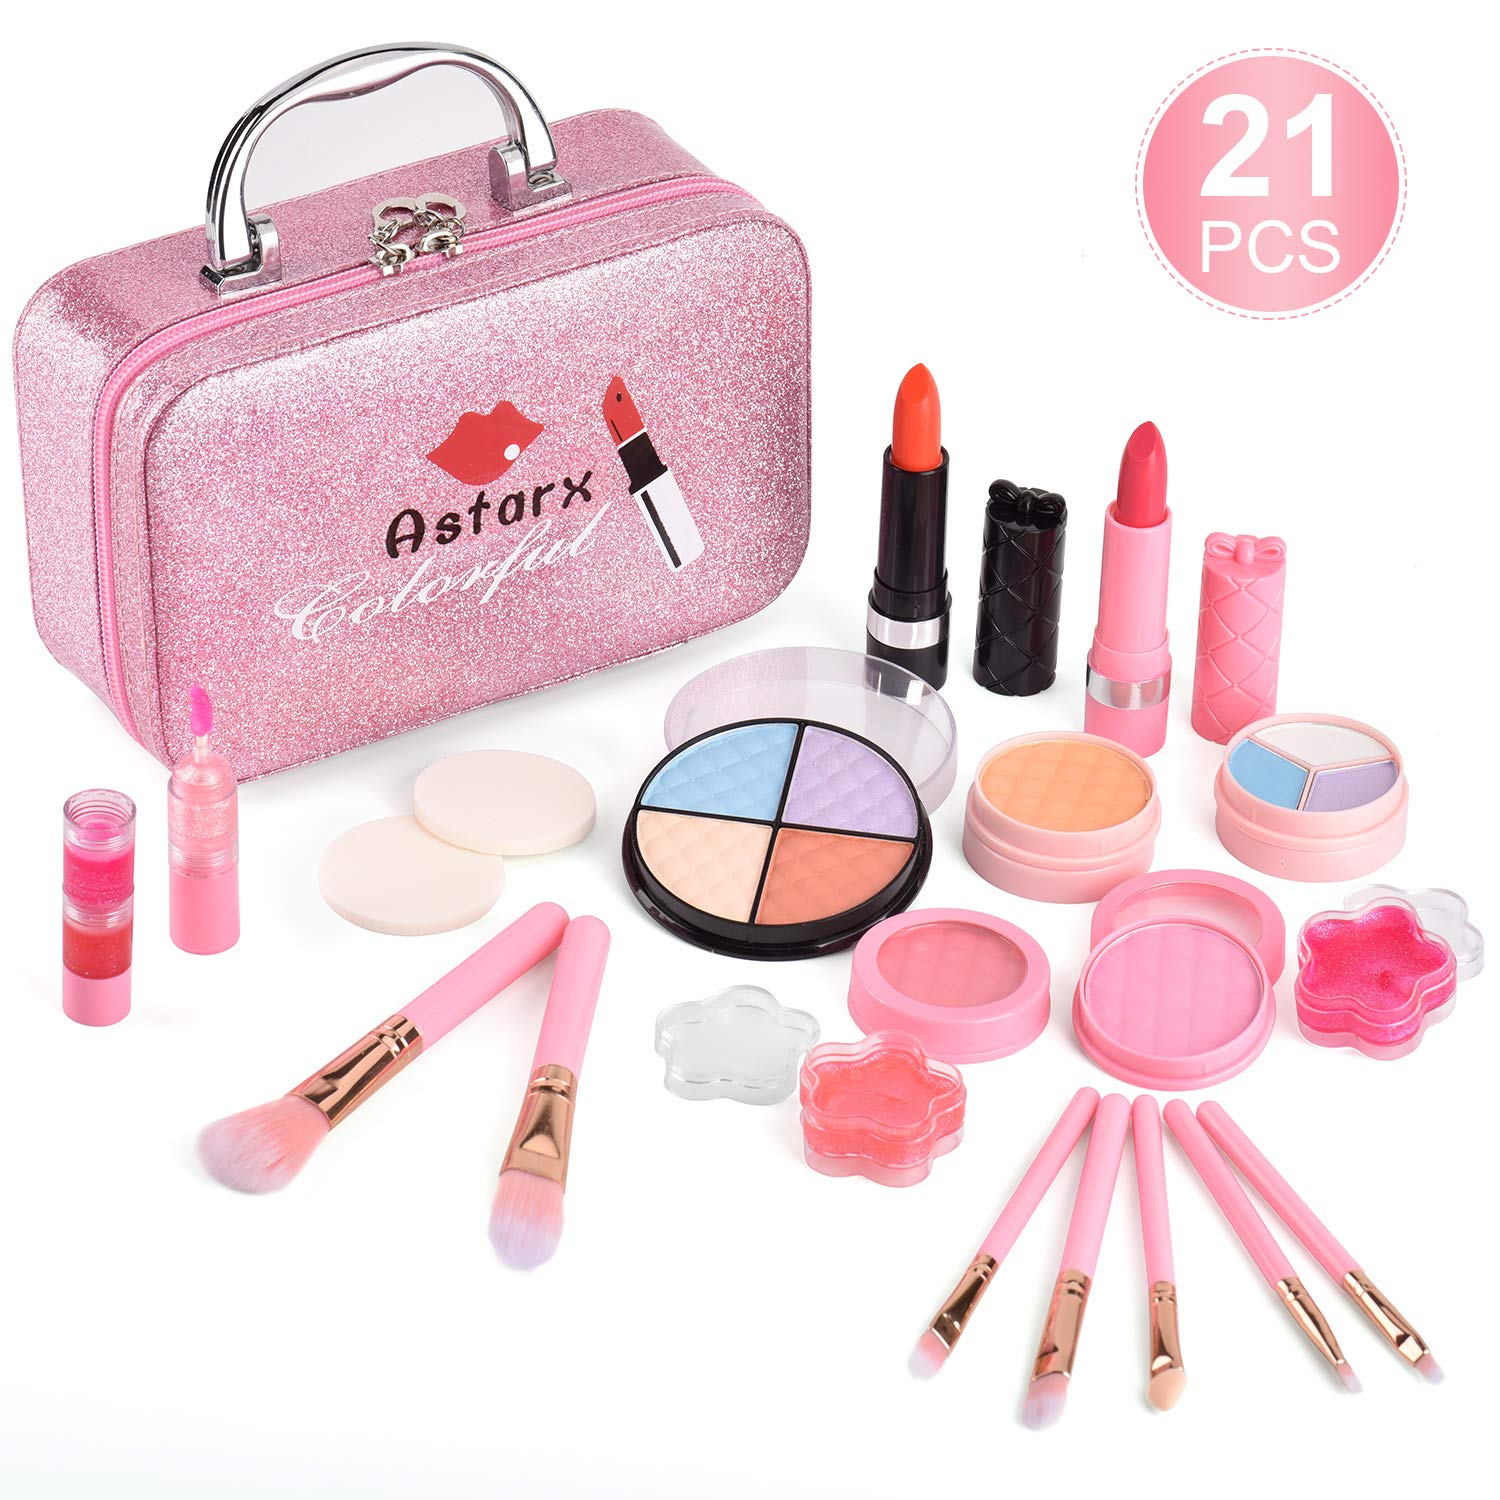 AstarX Makeup Toys for Kids,Real Washable Cosmetics Safe & Non-Toxic Beauty Set for Party Game Halloween Christmas Birthday by AstarX